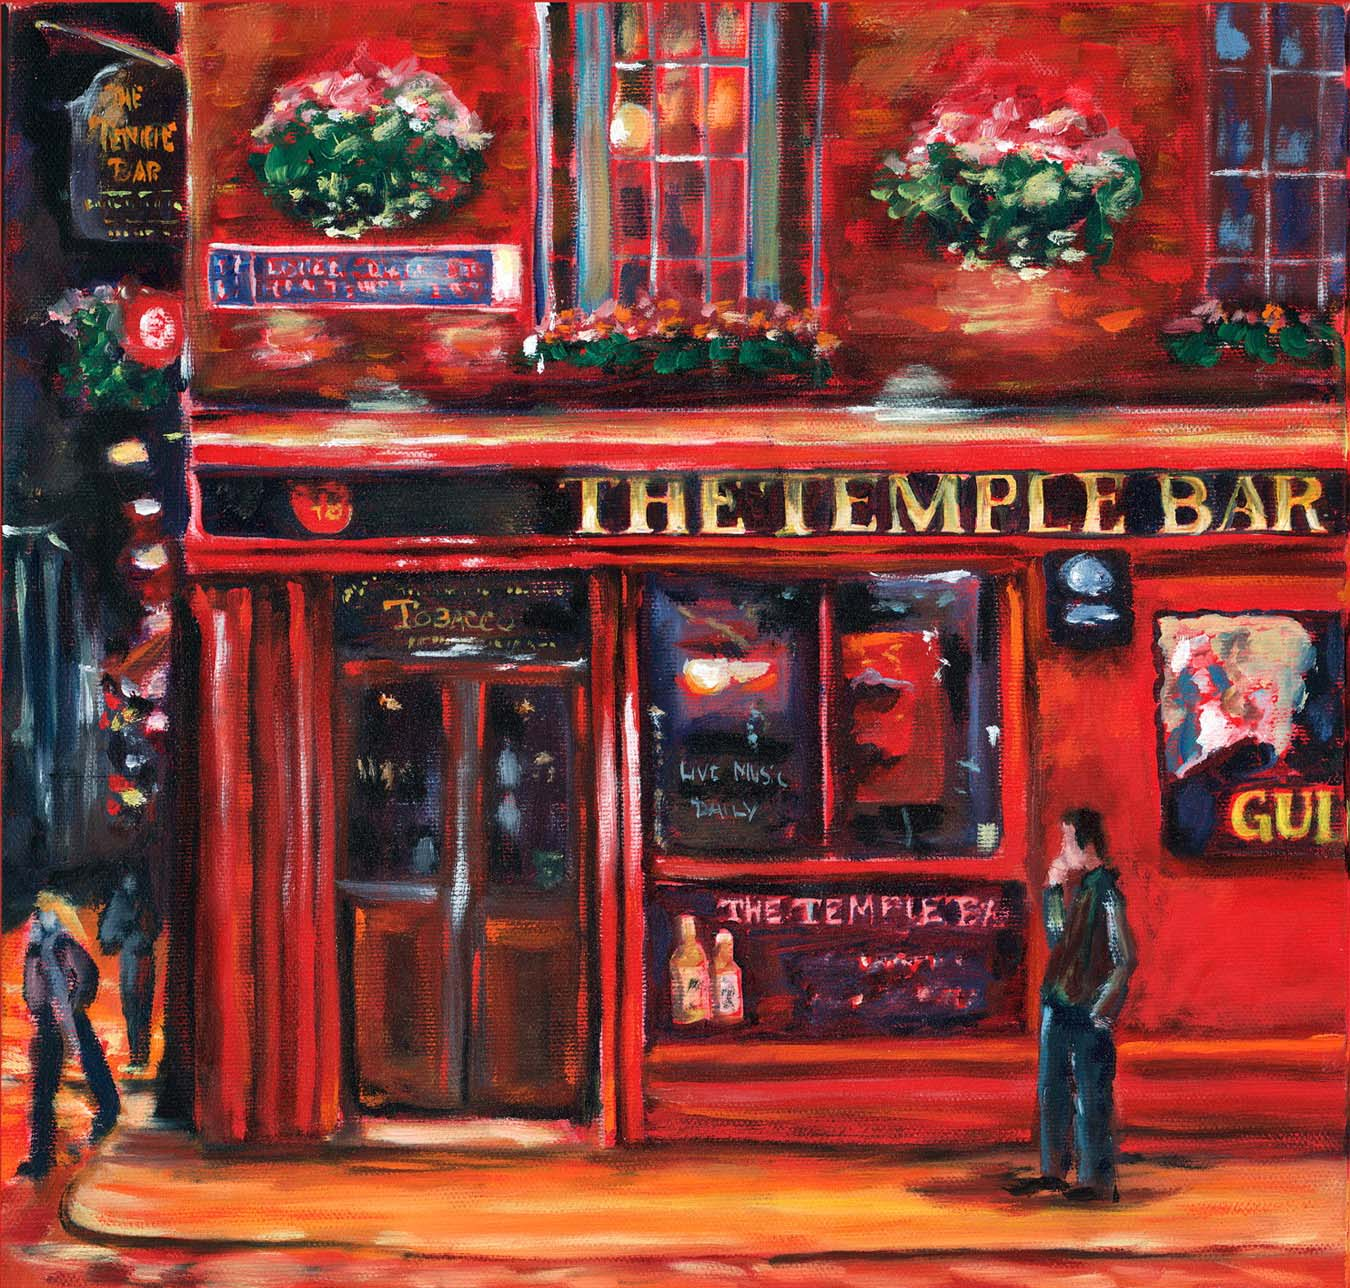 Evening in Temple Bar